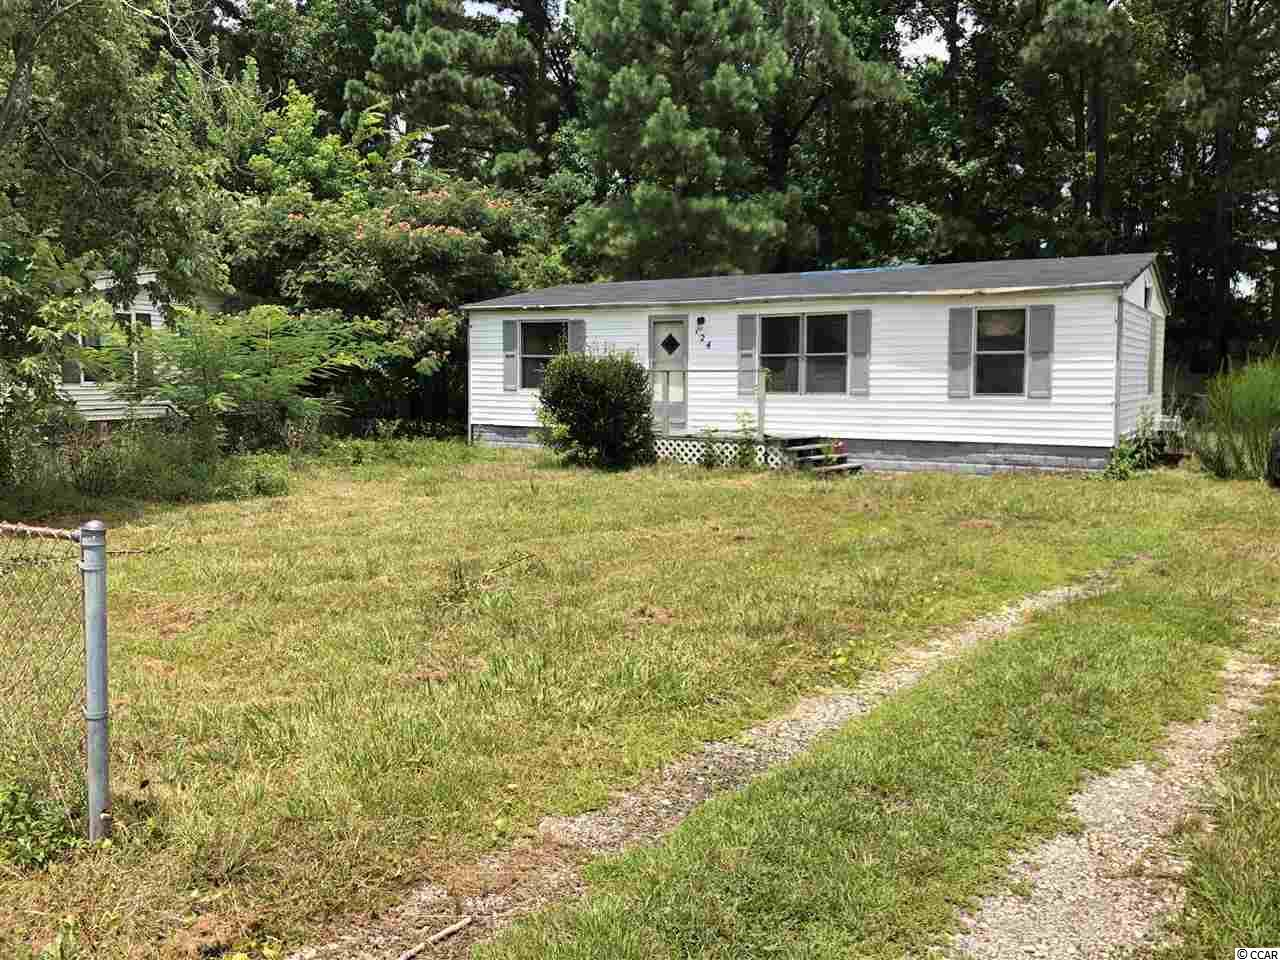 .25 acre lot close to waterway, Market Common and the beach.  Home was badly damaged by fire and price is based on value of lot alone.  There is no access to the home.  Buyer can remove or repair the home at their discretion.